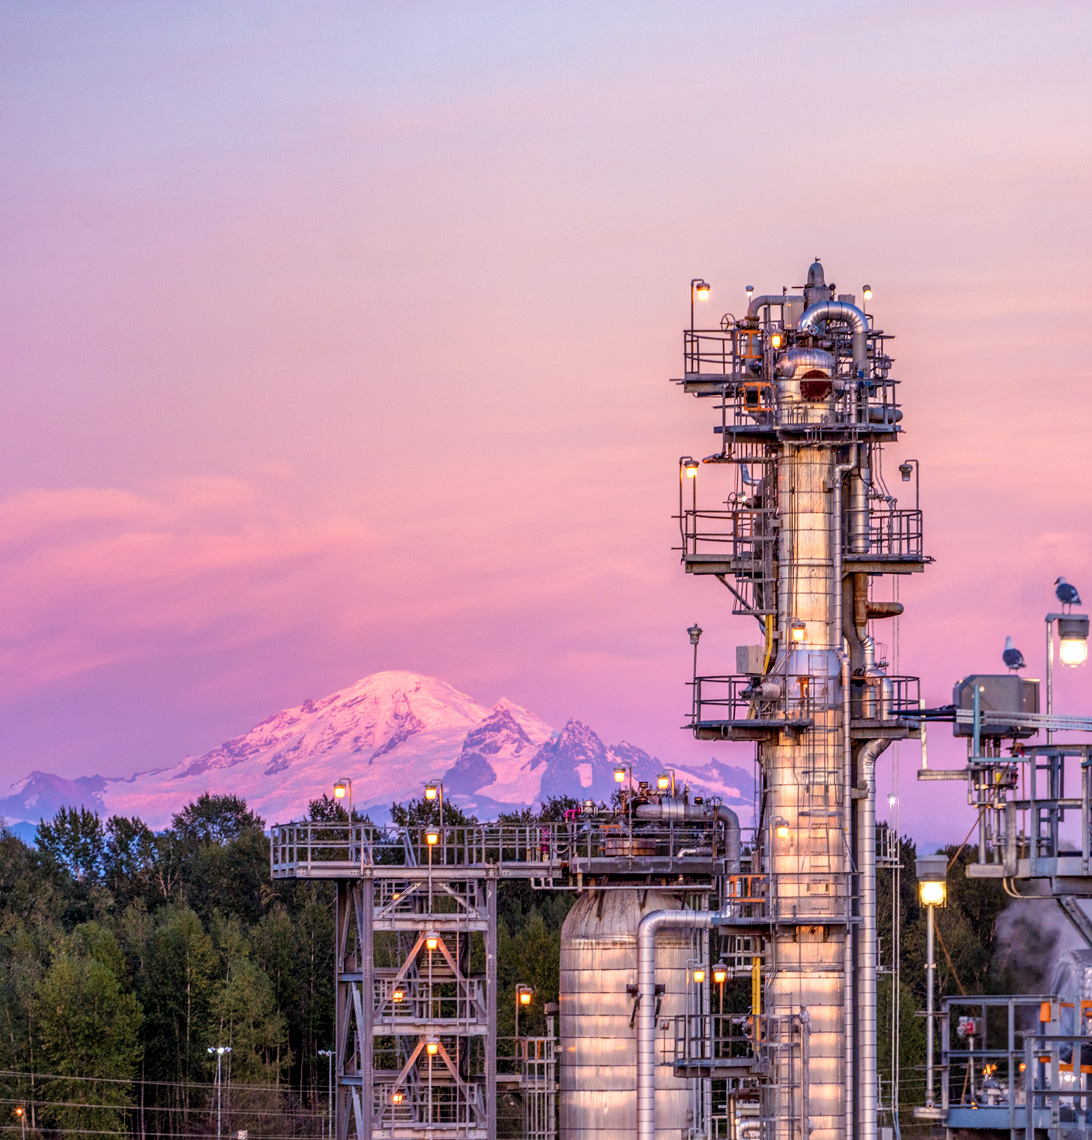 Cherry Point Refinery in Washington State during sunset with Mt. Baker in the distance.